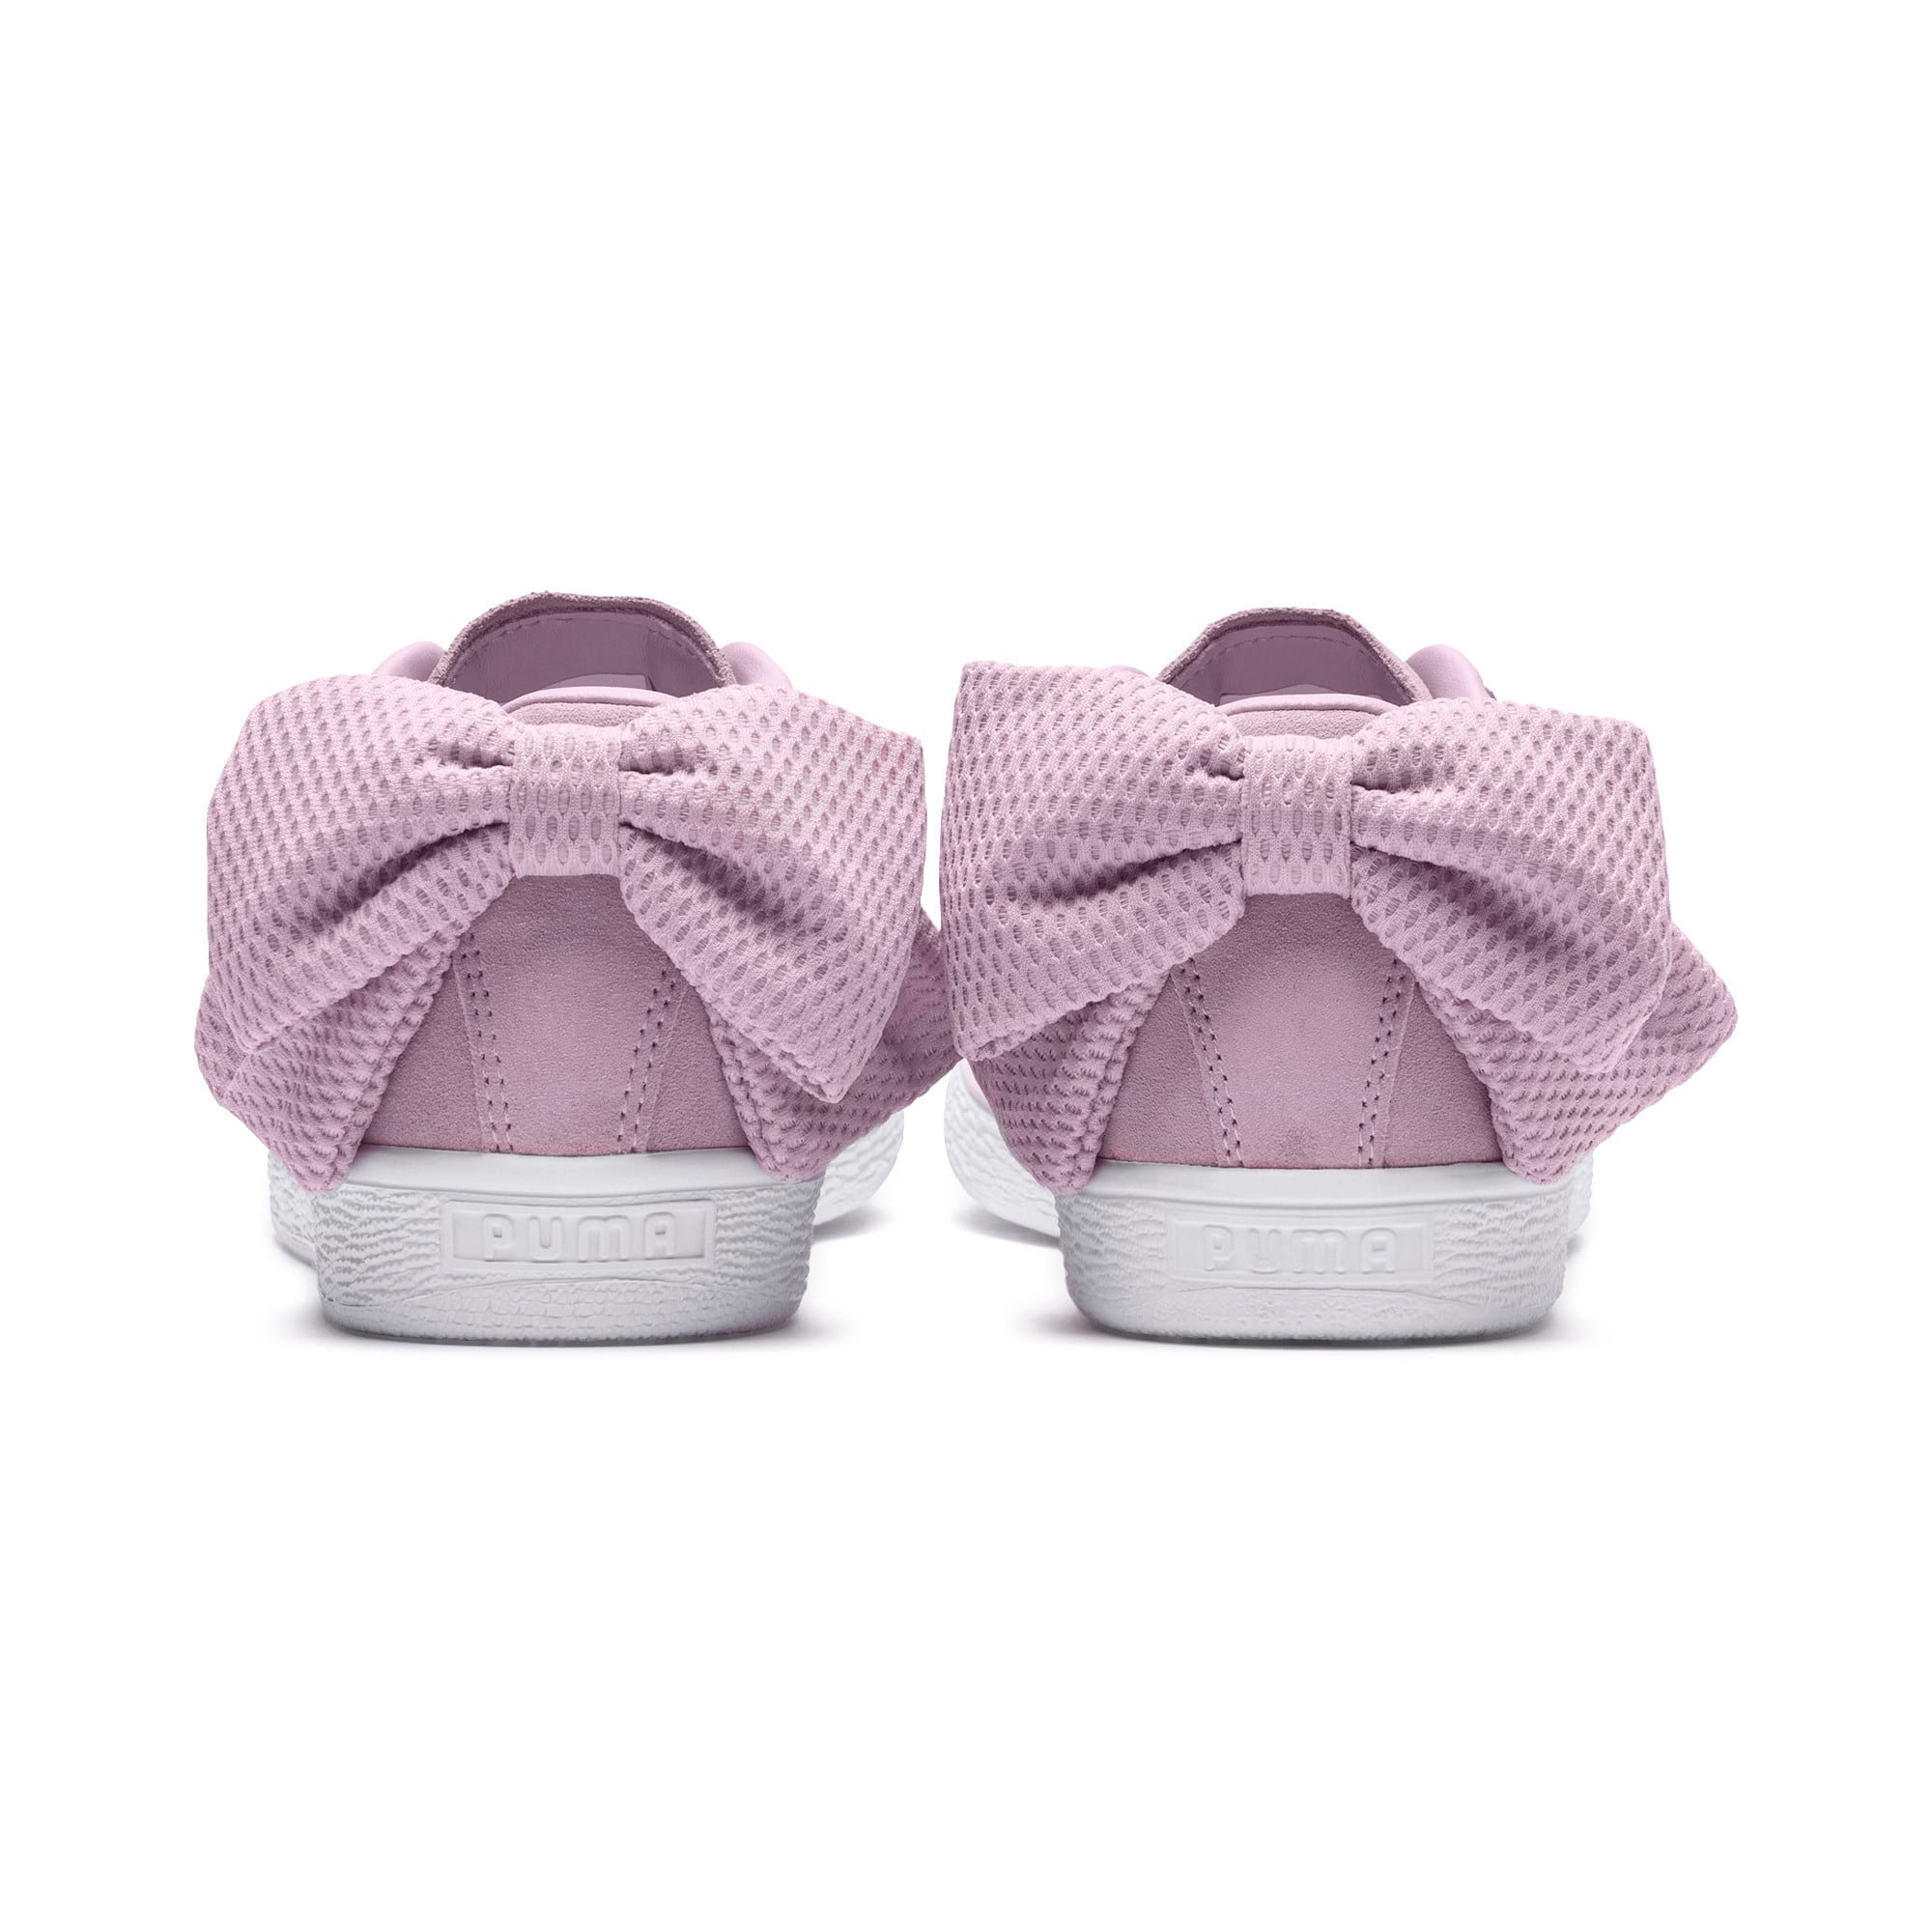 Thumbnail 4 of Suede Bow Uprising Women's Sneakers, Winsome Orchid-Puma White, medium